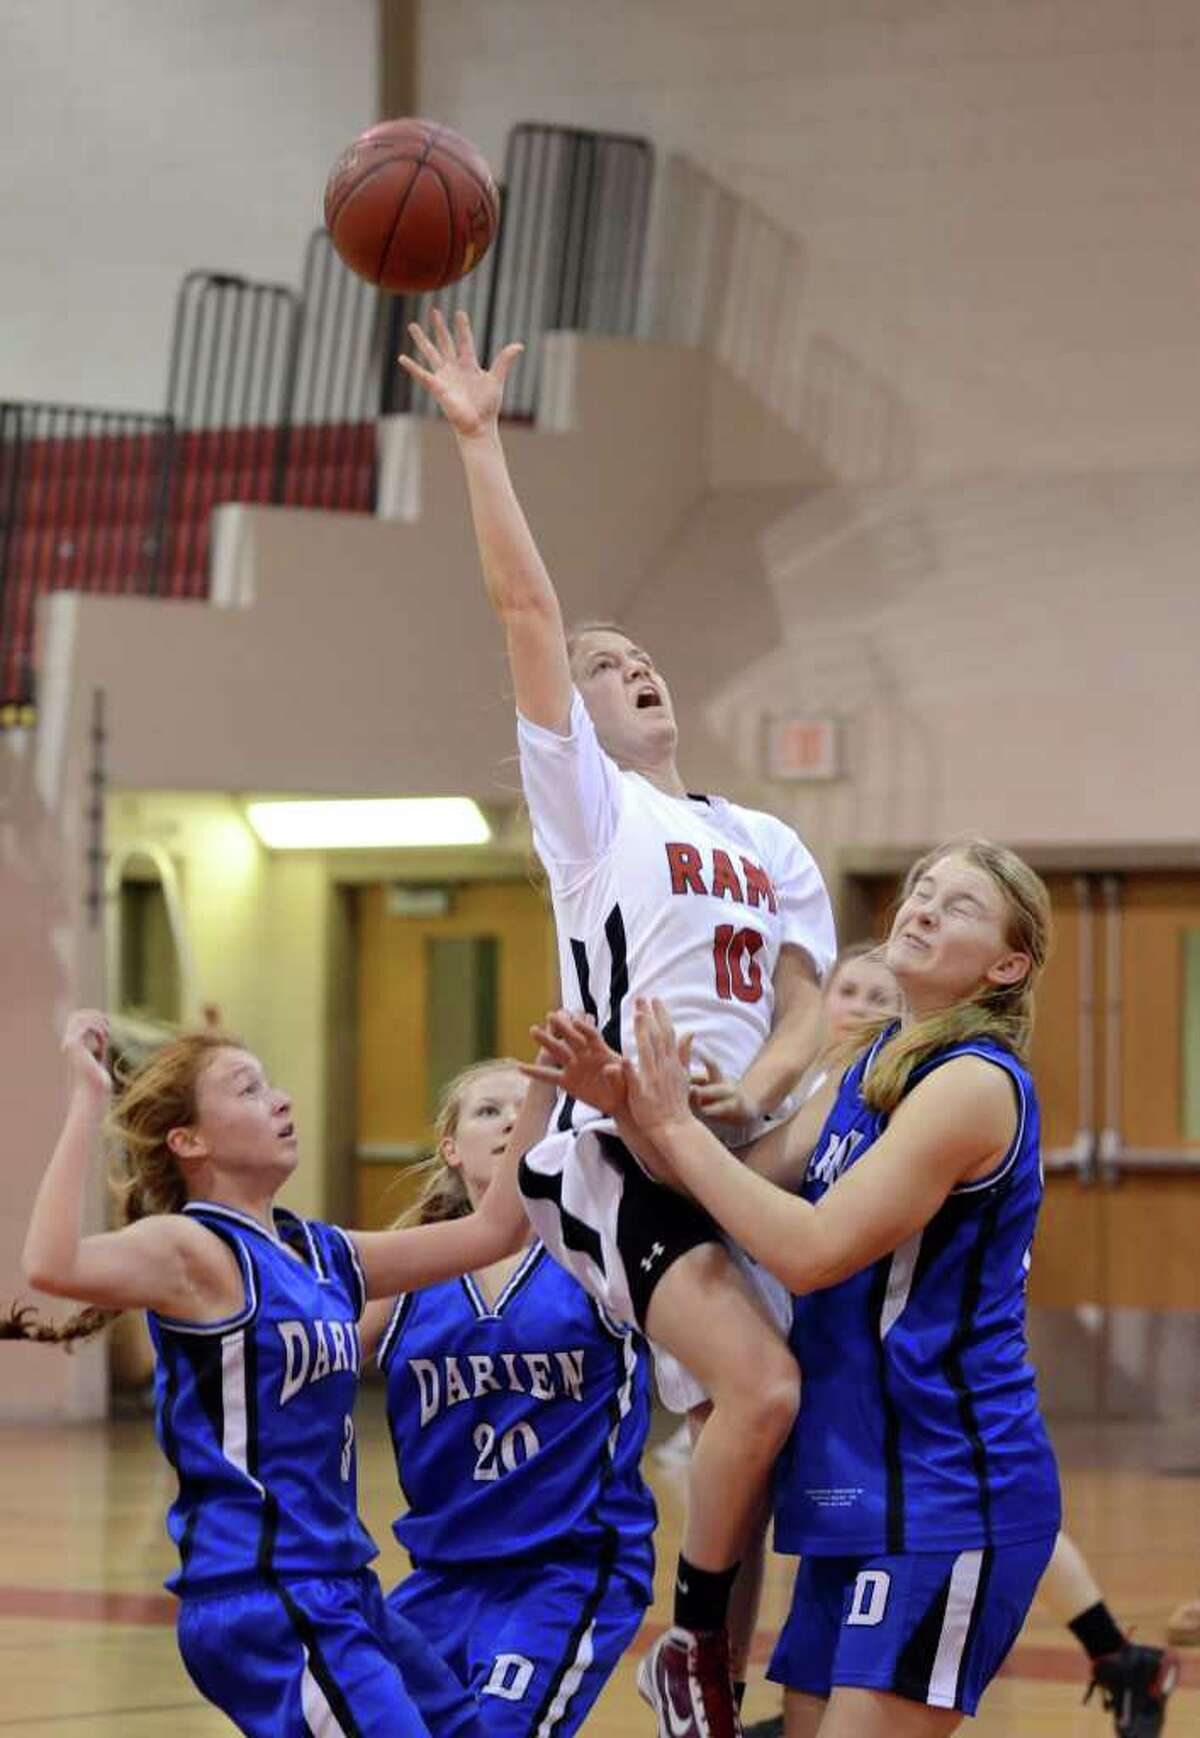 New Canaan's Sarah Mannelly (10) gets a shot off as she is fouled by Darien's Lane Davis (34) during the girls basketball game at New Canaan High School on Tuesday, Jan. 10, 2012.